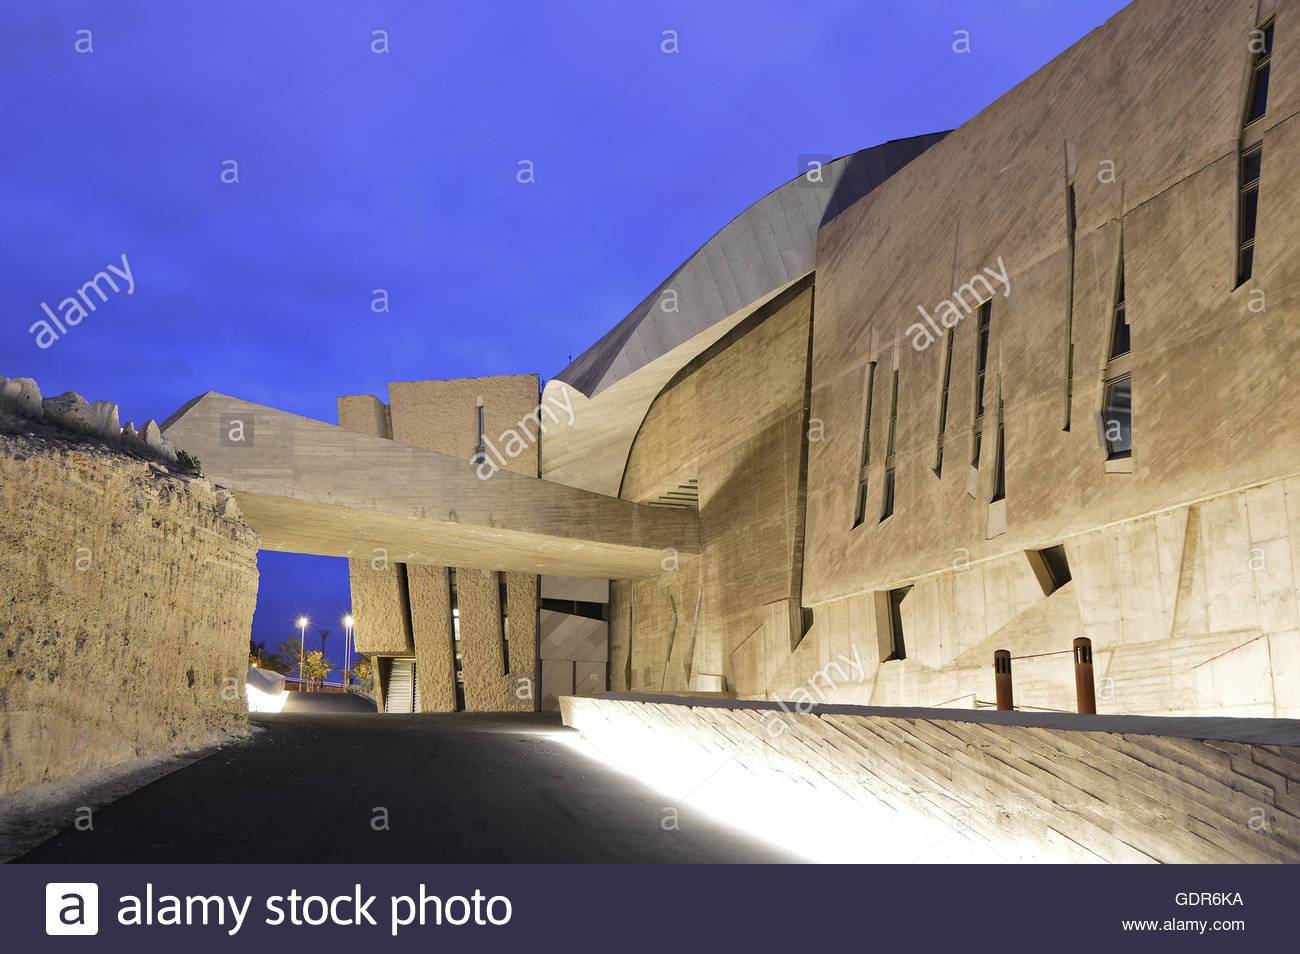 Magma Arts and Congress Center, modern stone and concrete structure at dusk, Costa Adeje Tenerife Canary Islands - Stock Image